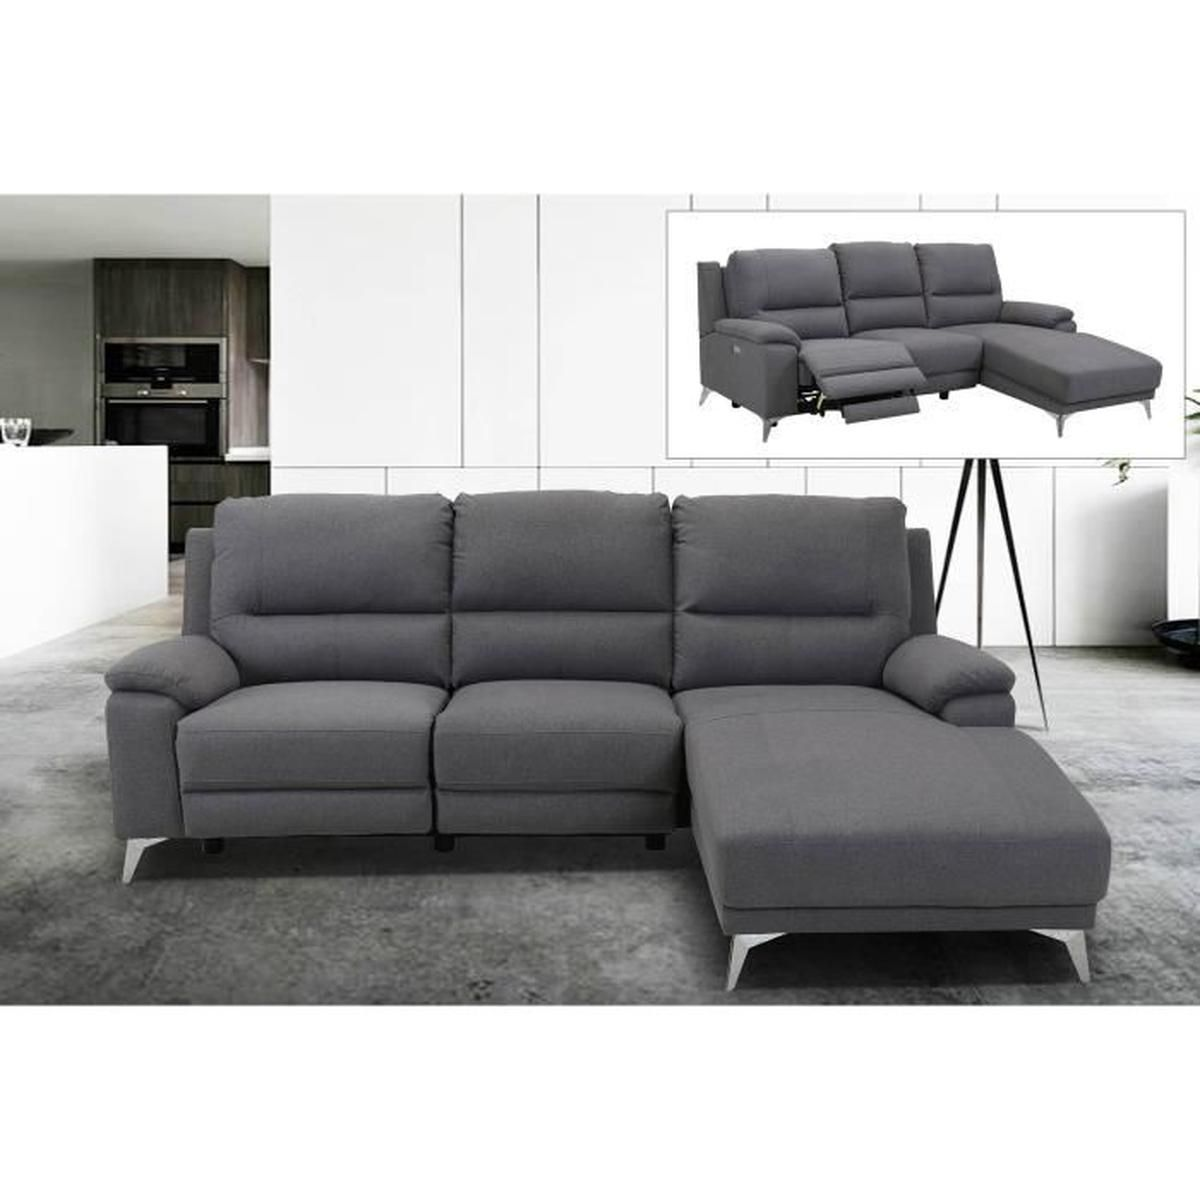 Pin By Mela Gosse On Jhone Sectional Couch Furniture Home Decor